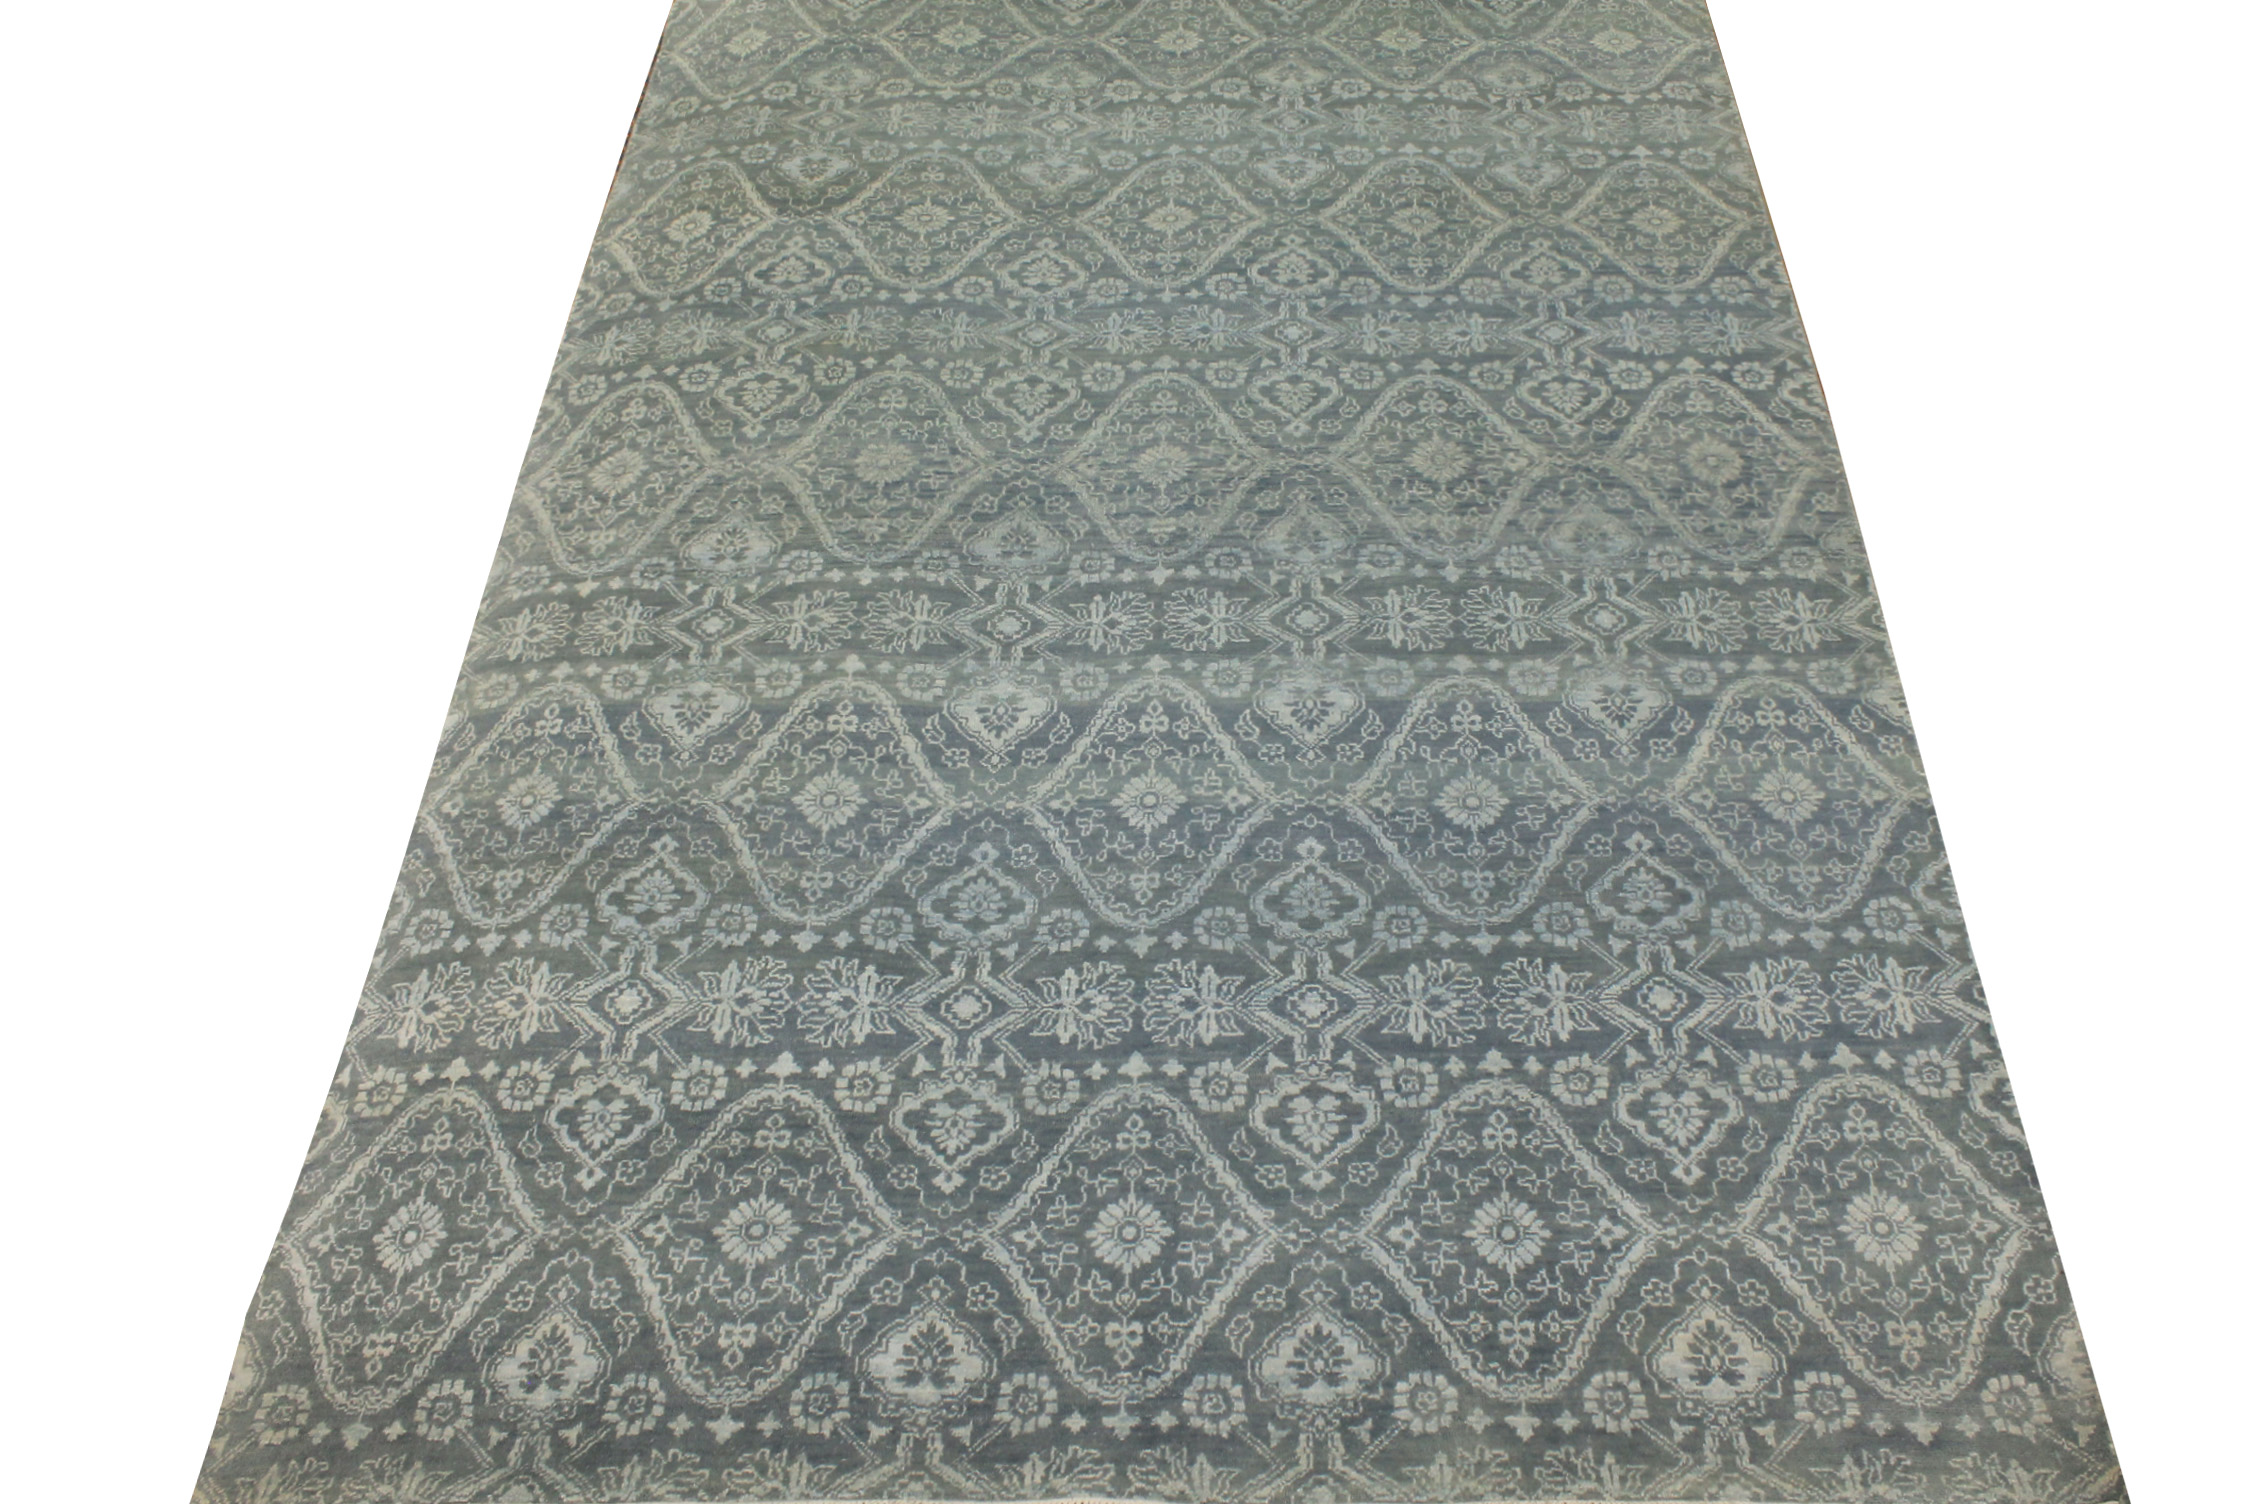 6x9 Contemporary Hand Knotted Wool Area Rug - MR021477